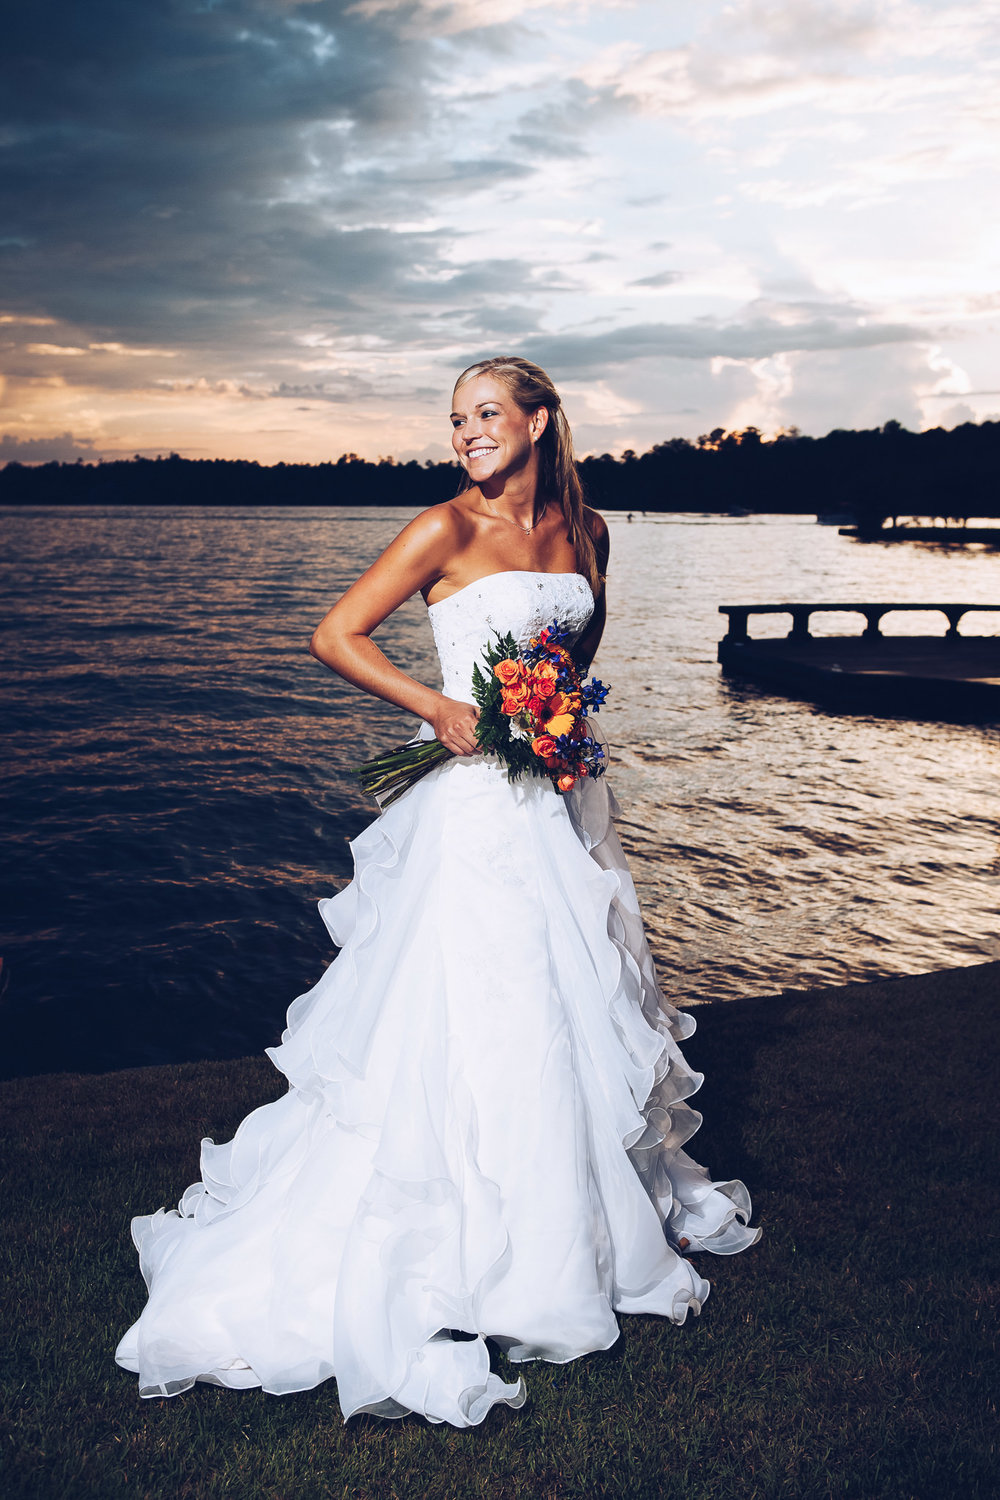 auburn-alabama-wedding-photograph-bruce.jpg